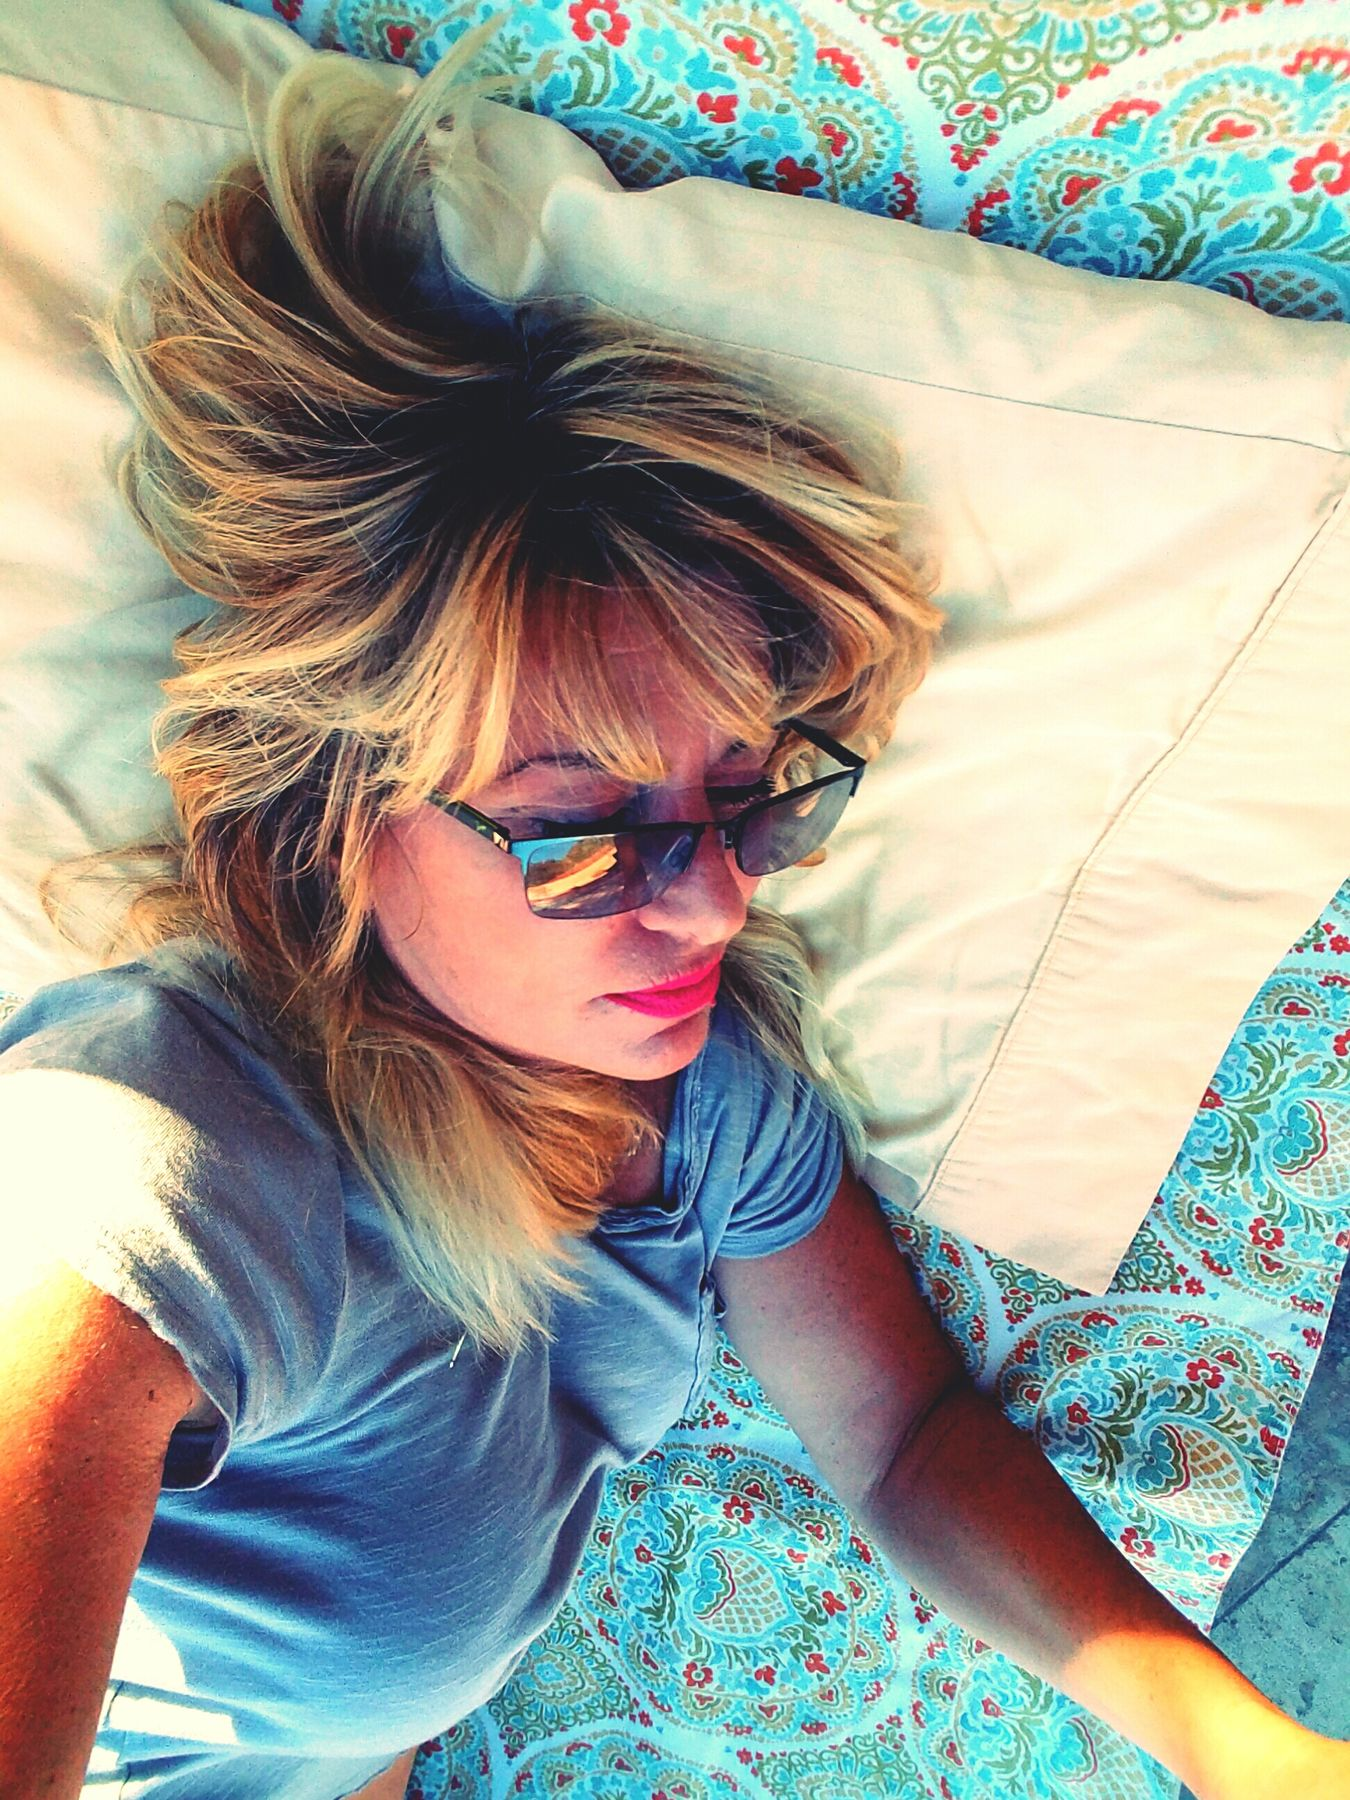 One Woman Only Lifestyles Sleepyhead Sleeping Beauty Afternoon Outdoors Relaxing @ Home Catch The Moment Taking It All In Things I Like 👍 Relaxing Moments Busywoman Beautiful World Women Of EyeEm Softness Is My Kingdom Oneheckofaday